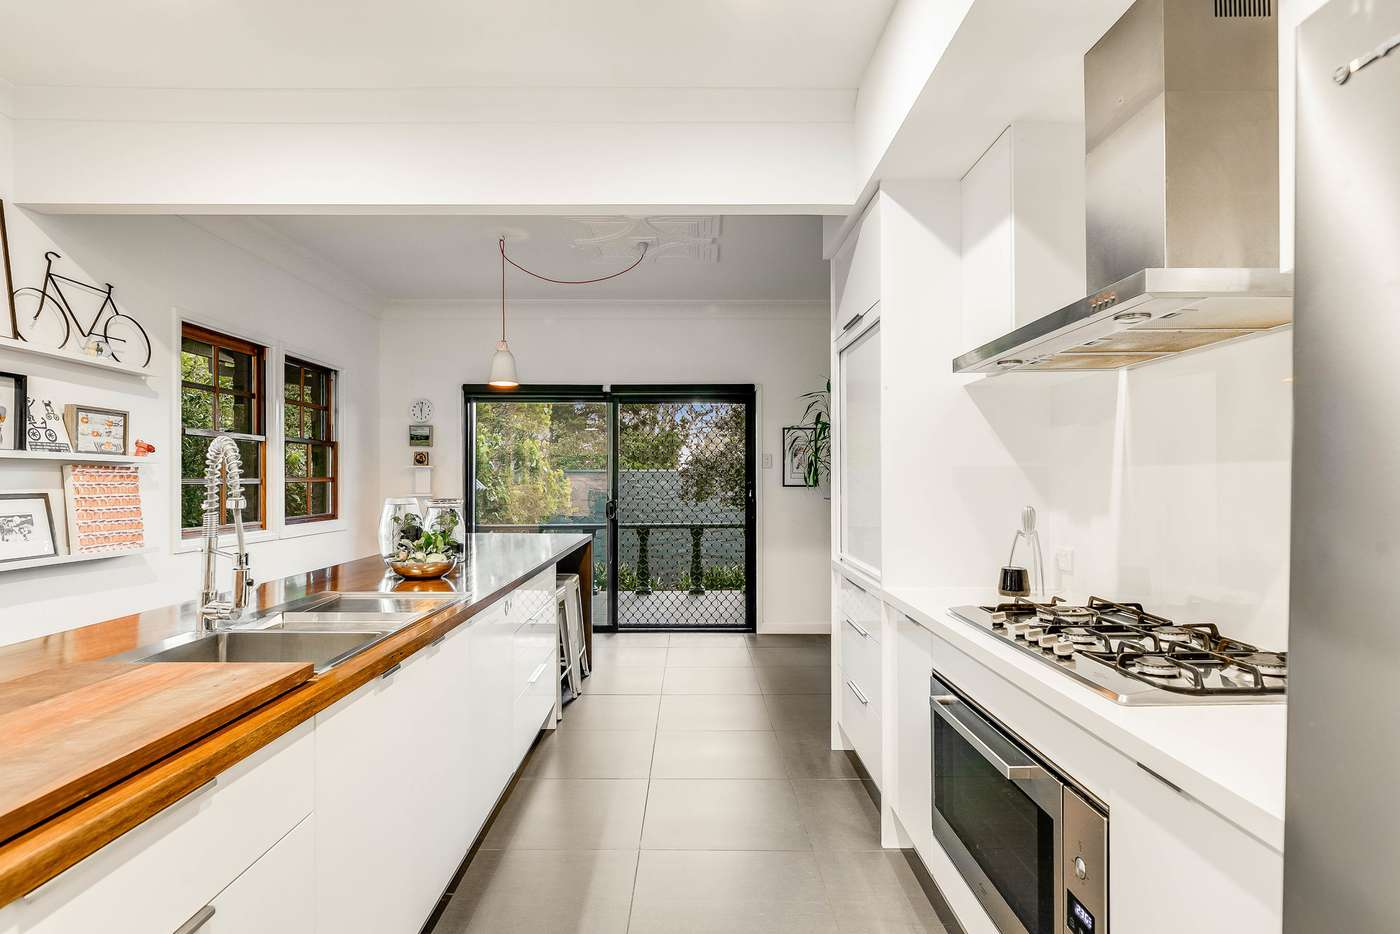 Sixth view of Homely house listing, 6 Hickey Street, East Toowoomba QLD 4350